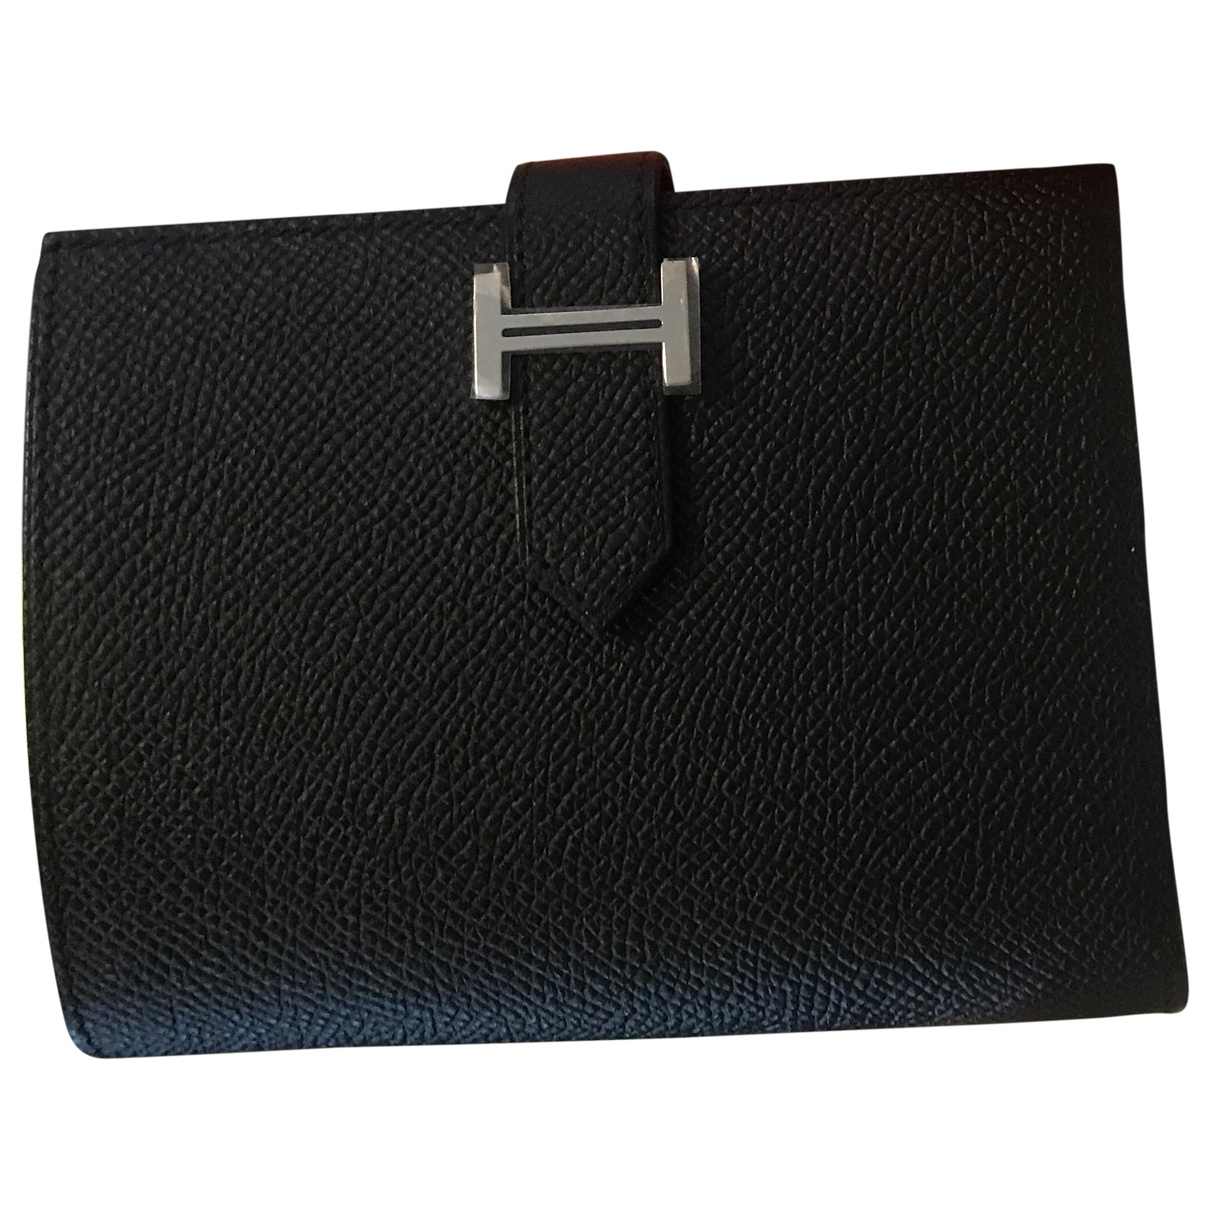 Hermès Béarn Black Leather wallet for Women \N